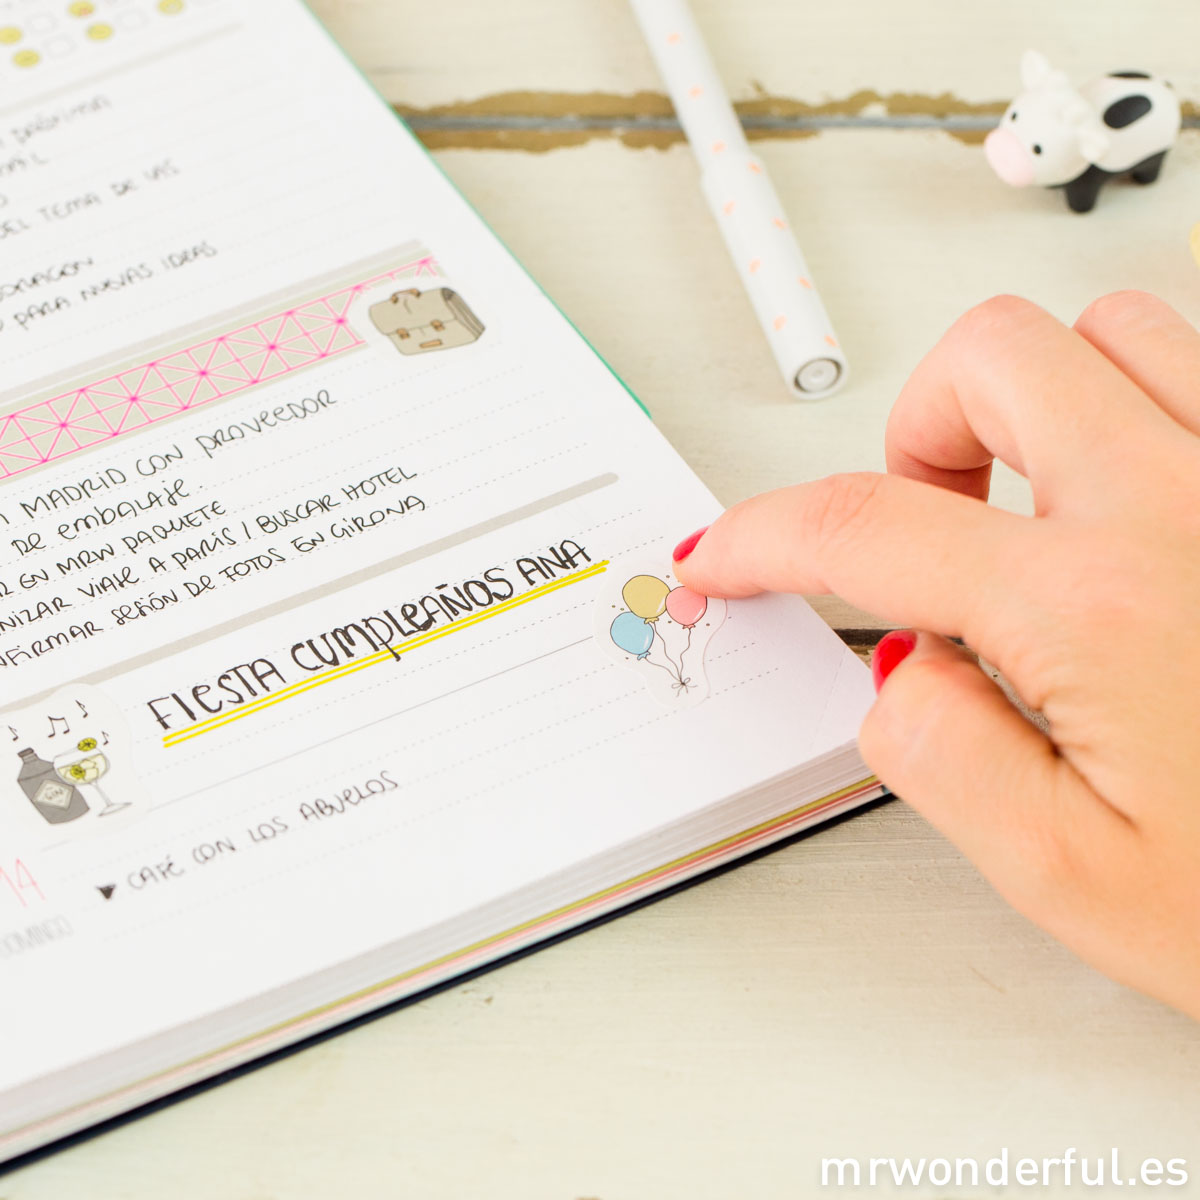 mrwonderful_AGENDA-WONDER_2014-207